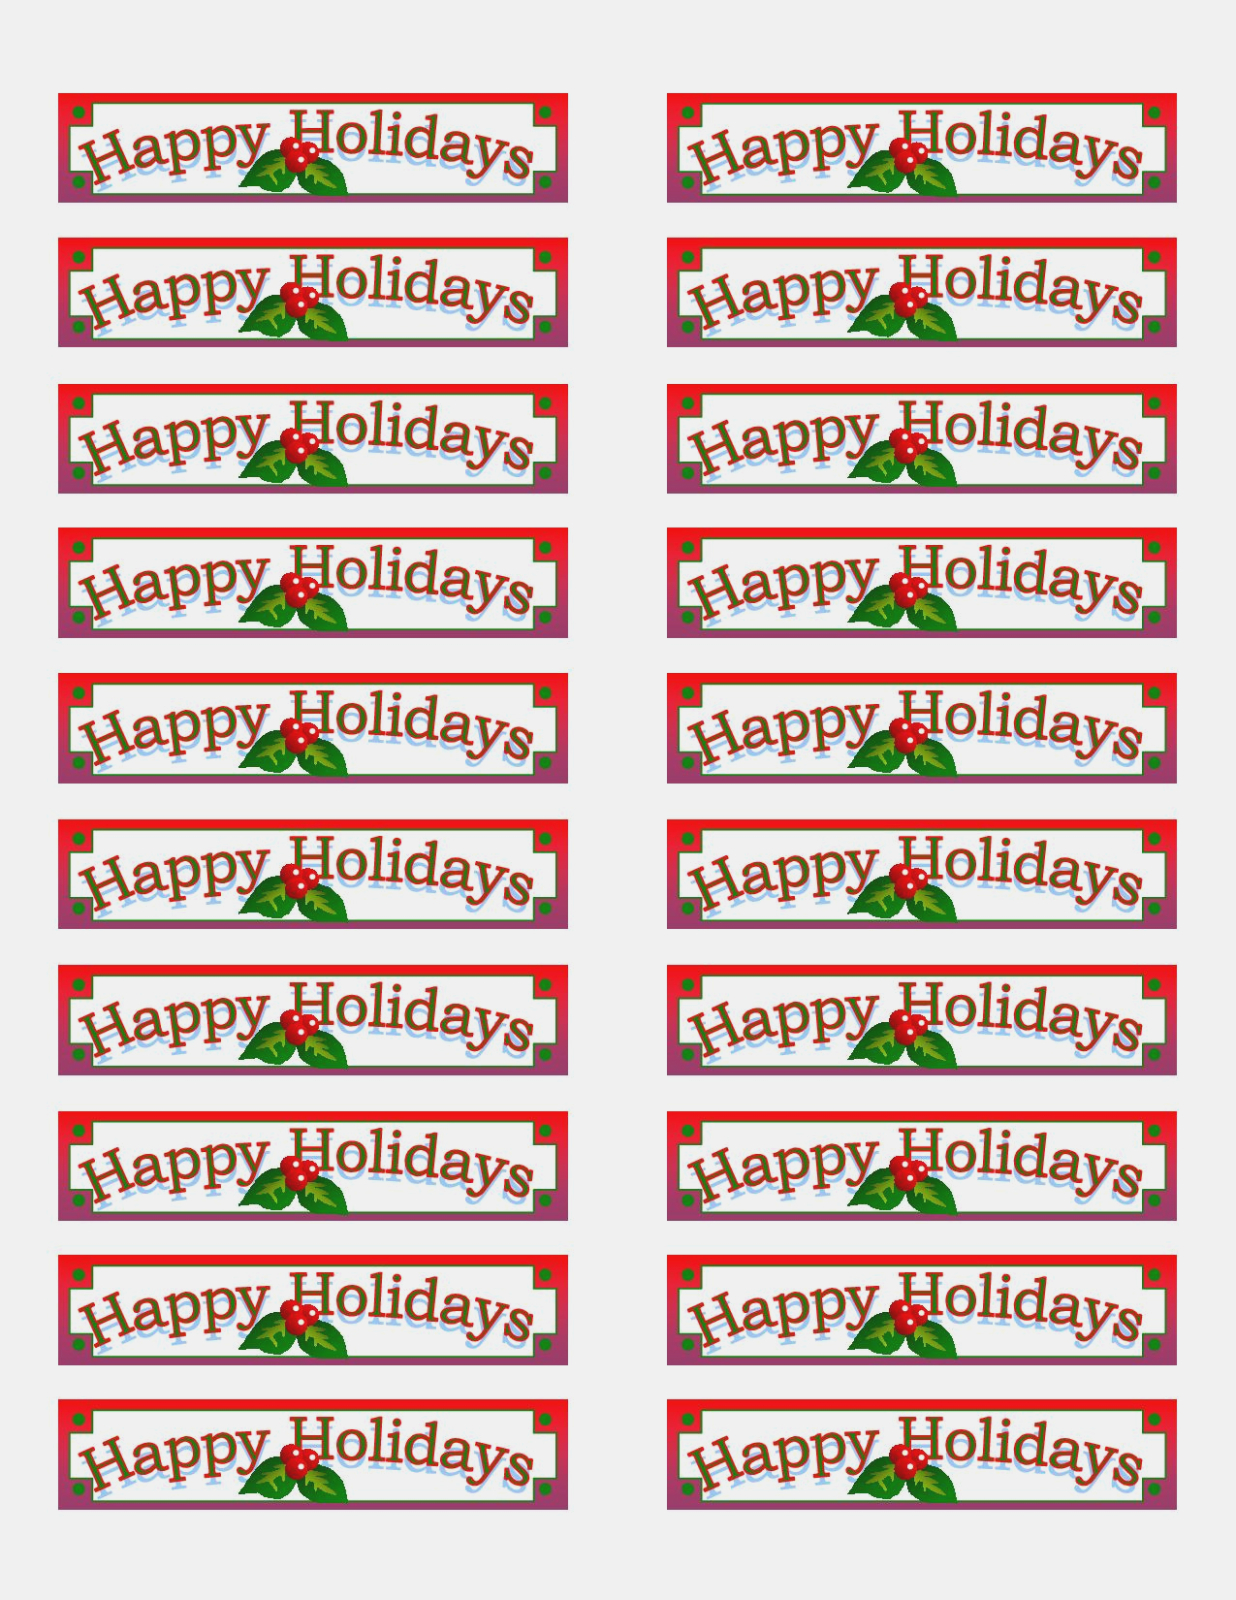 All You Need To Know About Free Avery | Label Maker Ideas - Free Printable Christmas Address Labels Avery 5160